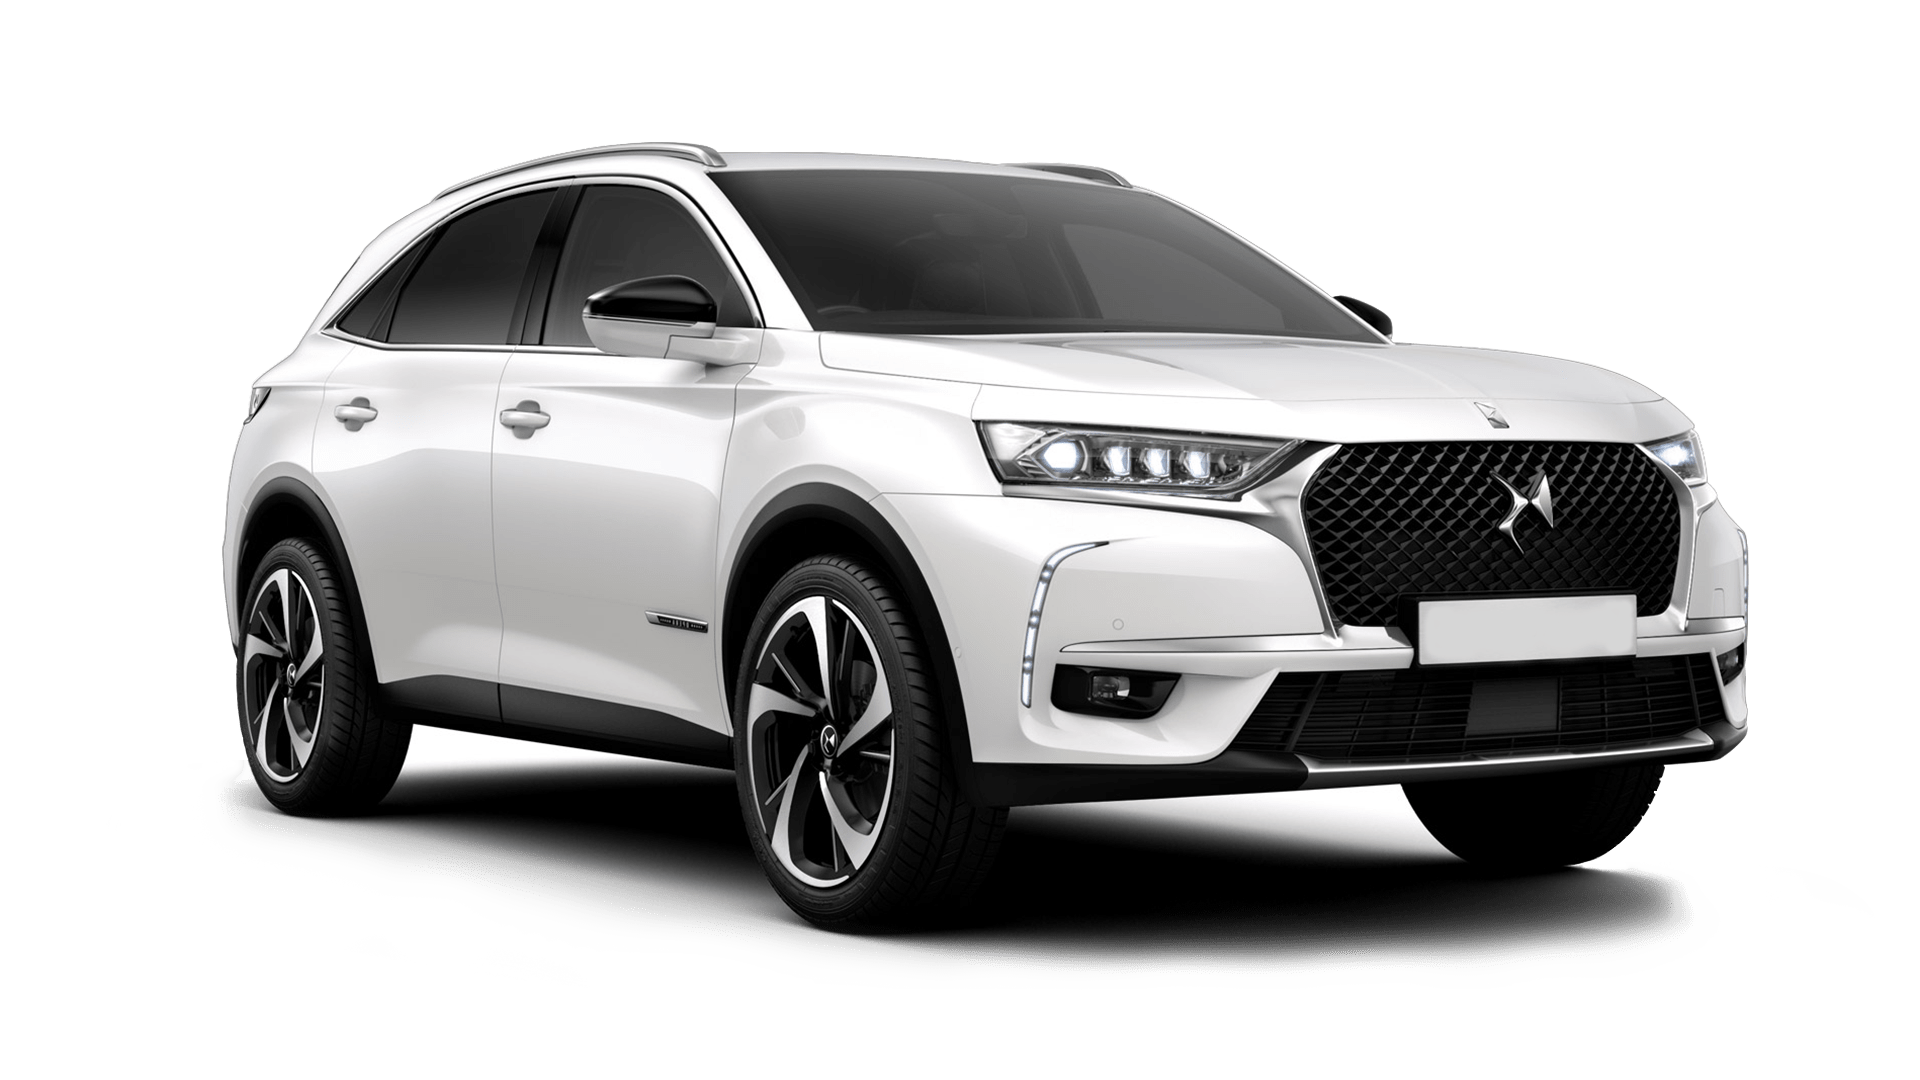 Citroen Ds7 New Ds 7 Crossback Deals Offers Save Up To 12 242 Carwow